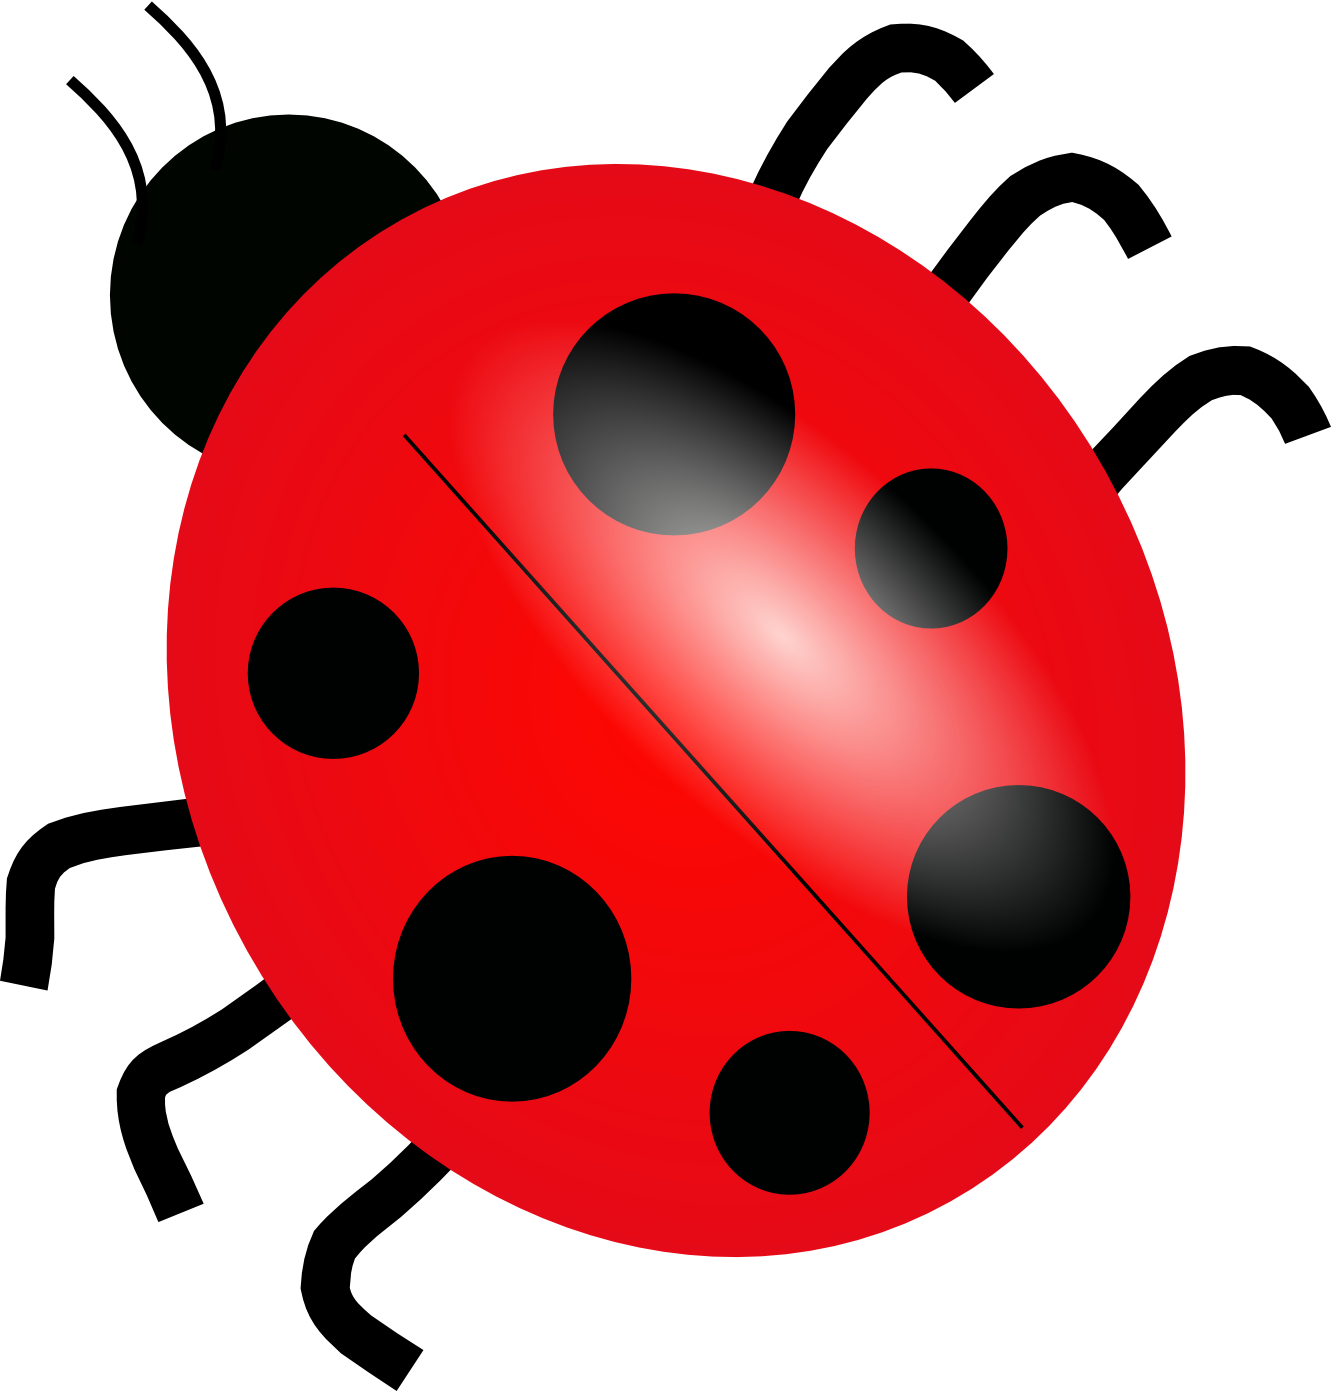 transparent ladybug top view